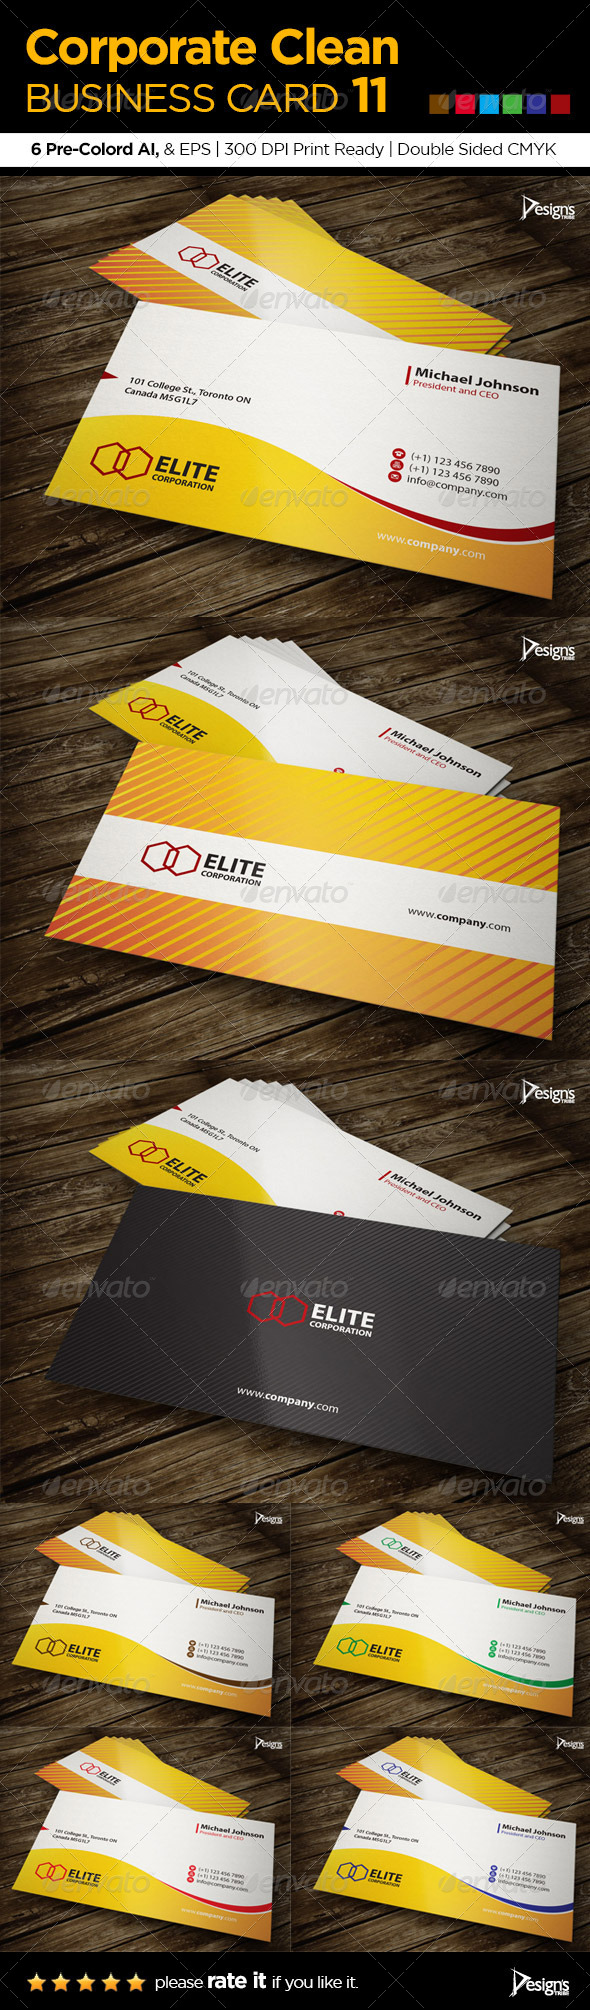 Corporate Clean Business Card 11 - Corporate Business Cards